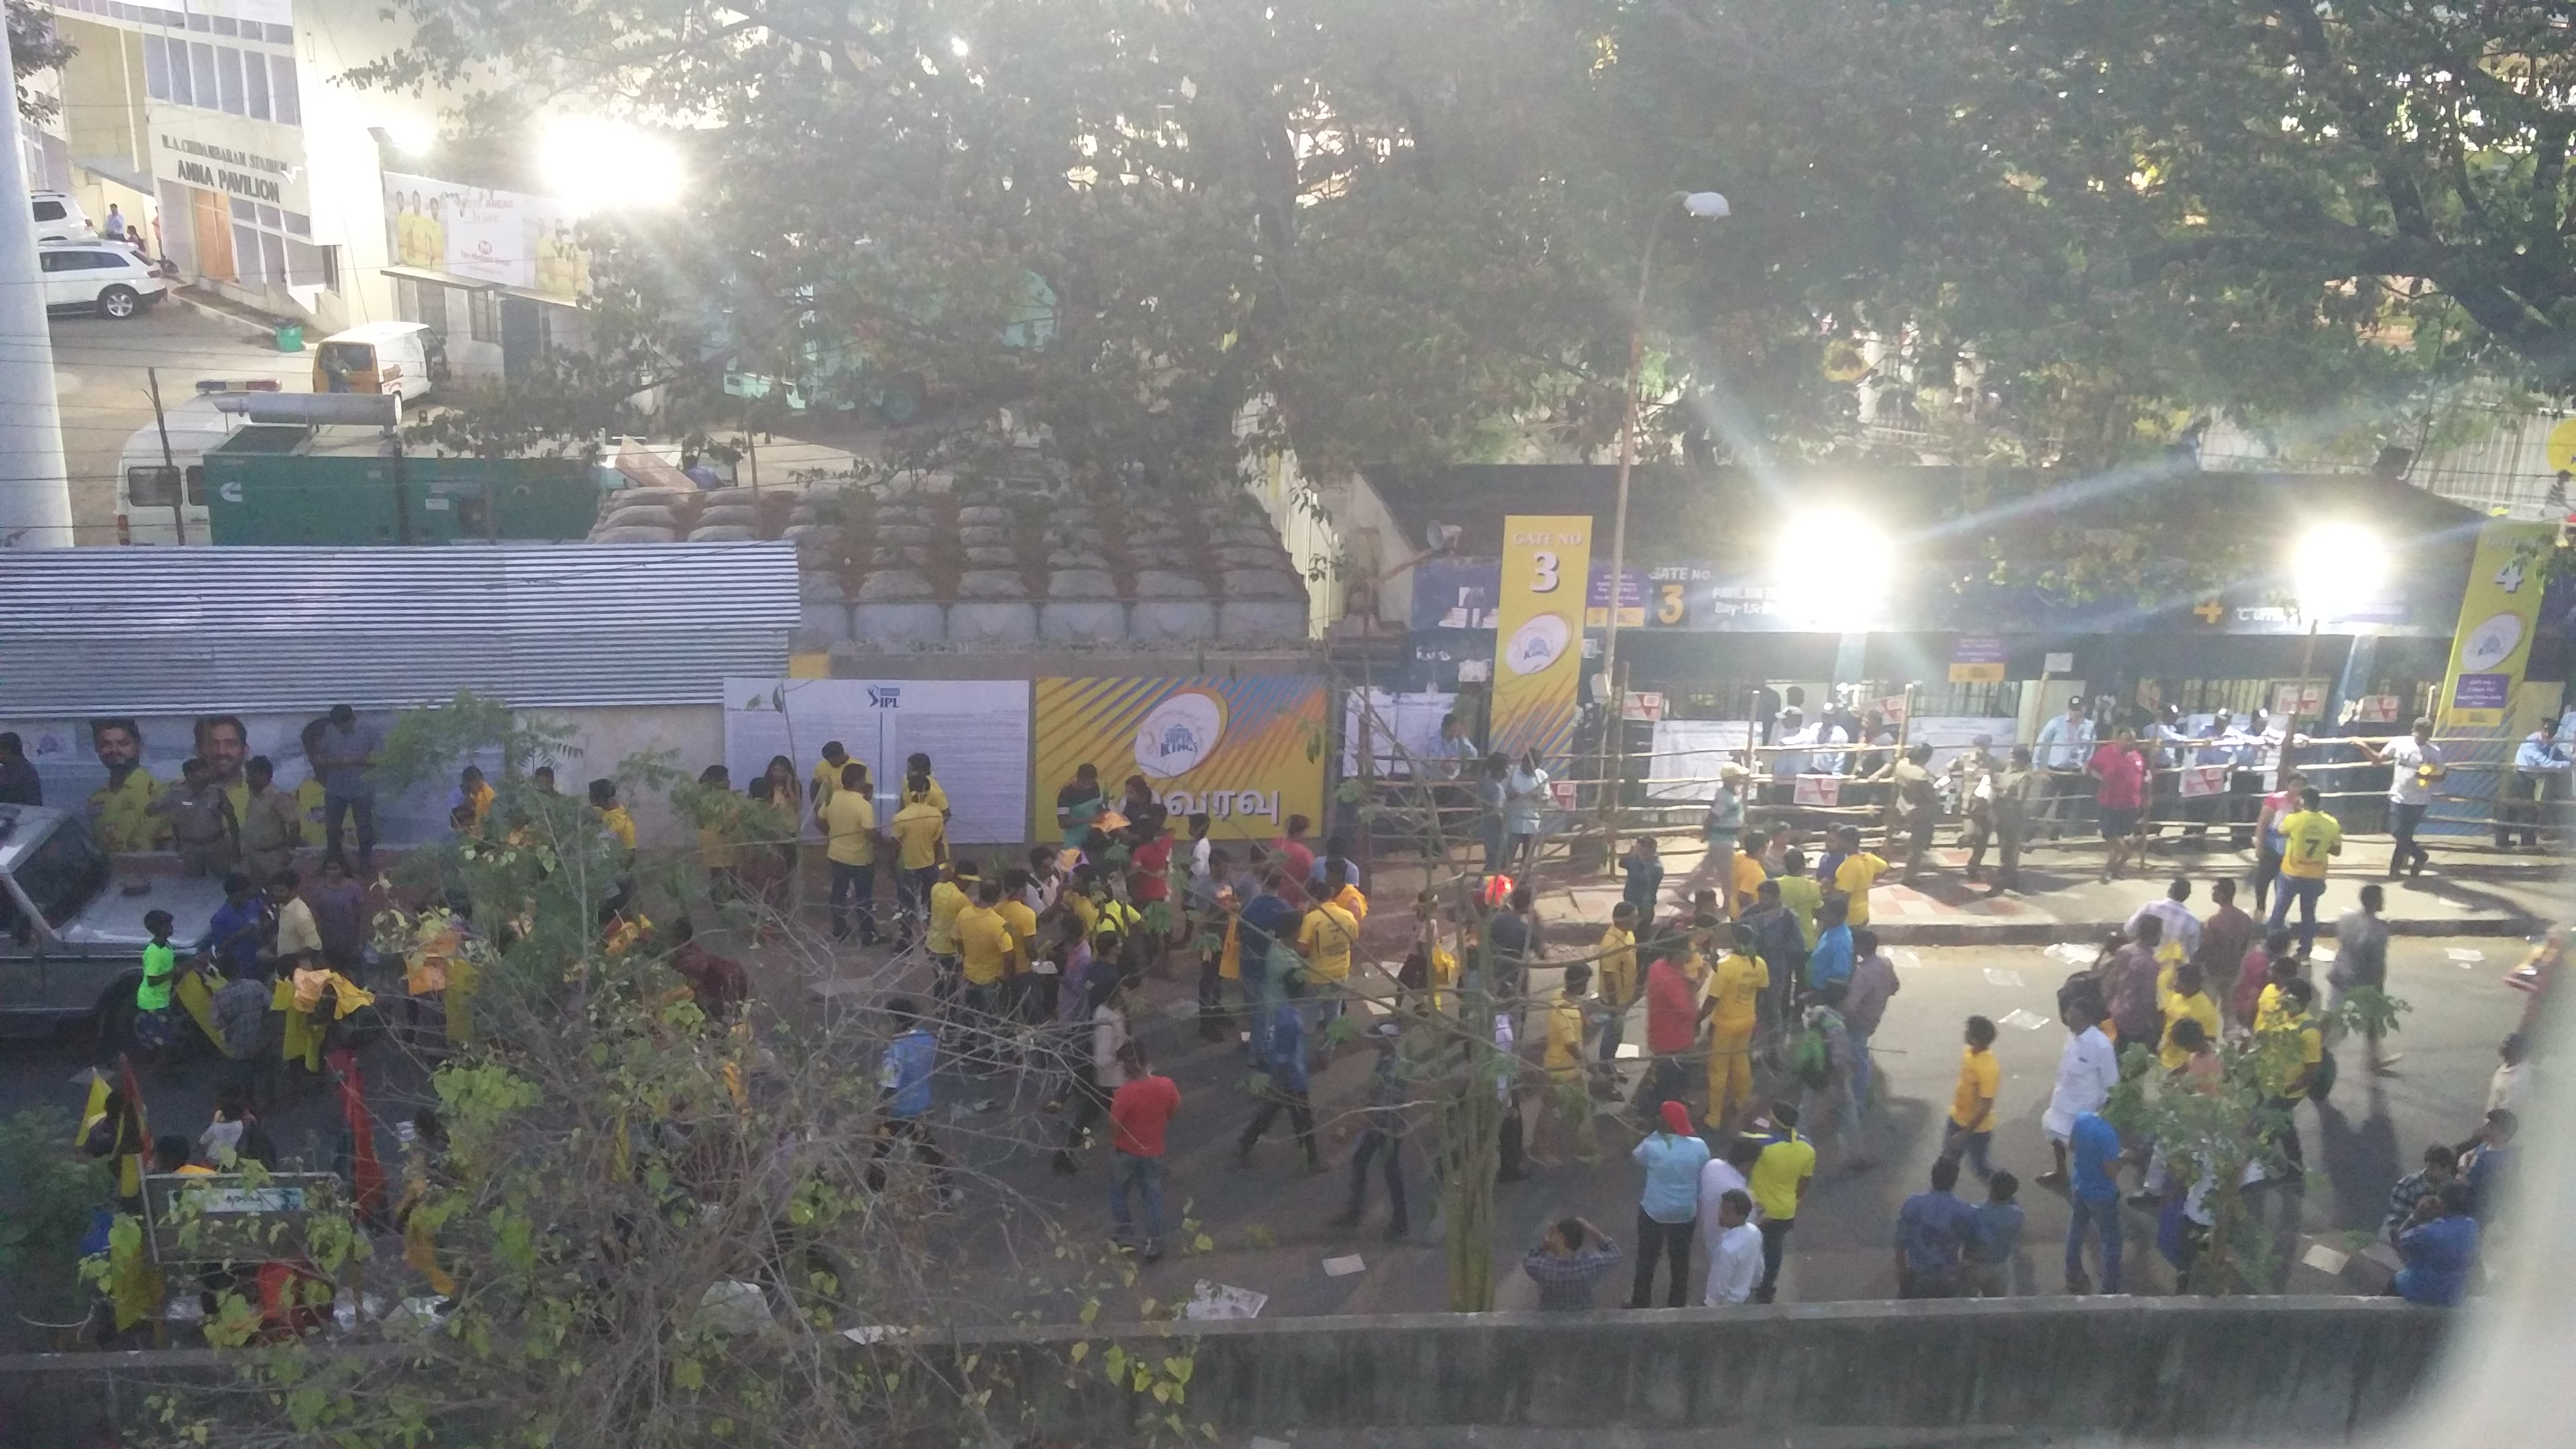 Scenes outside the stadium before the match (Vinita Govindarajan/Scroll.in)